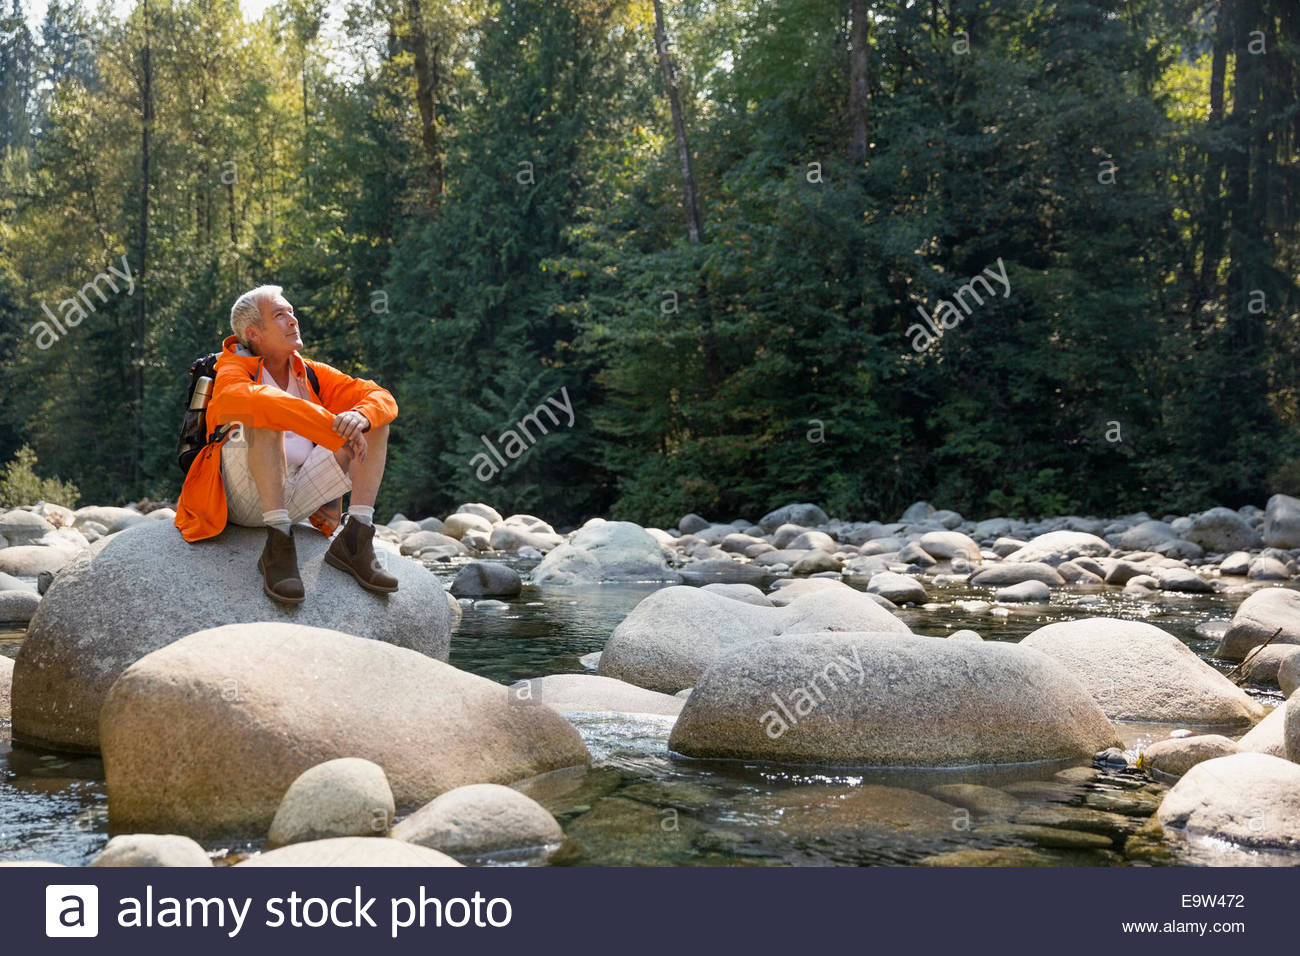 Man sitting on rocks over creek in woods - Stock Image